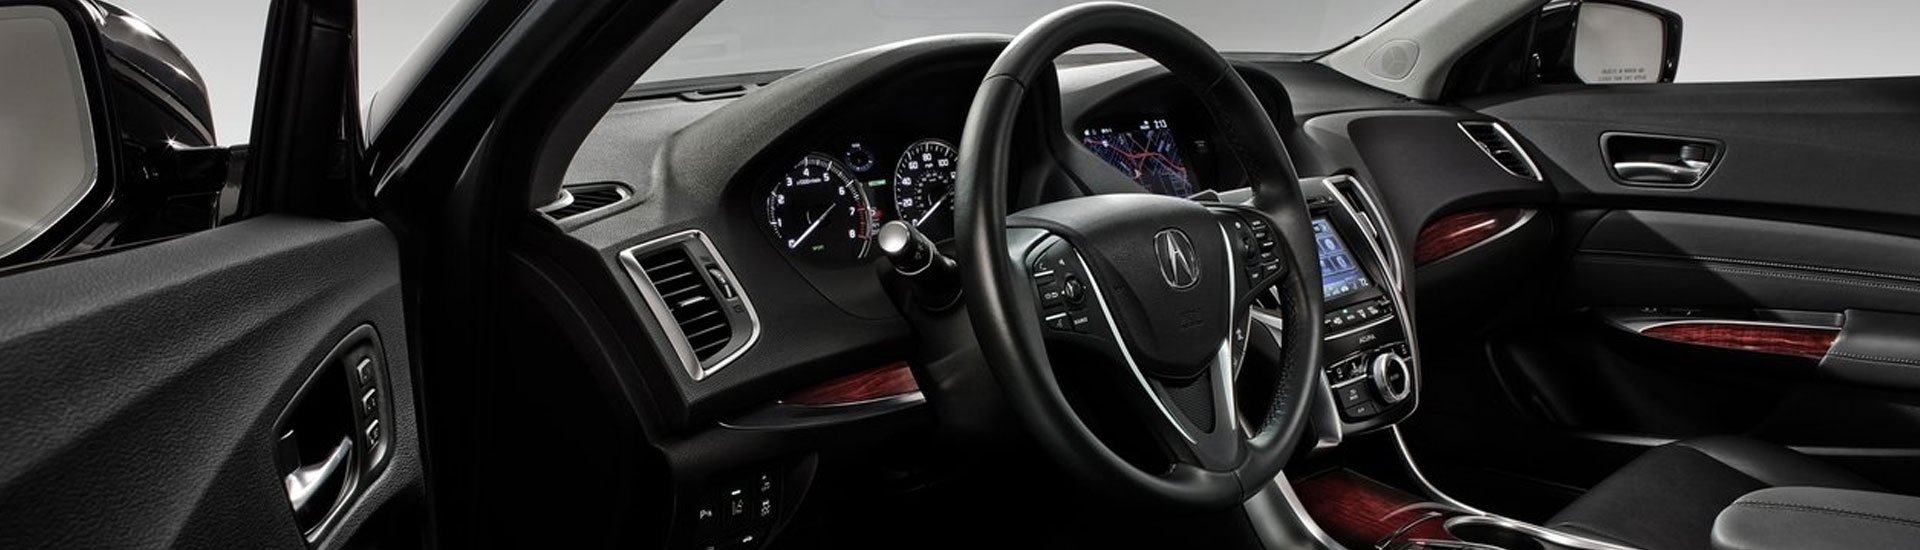 2007 Acura RDX Custom Dash Kits